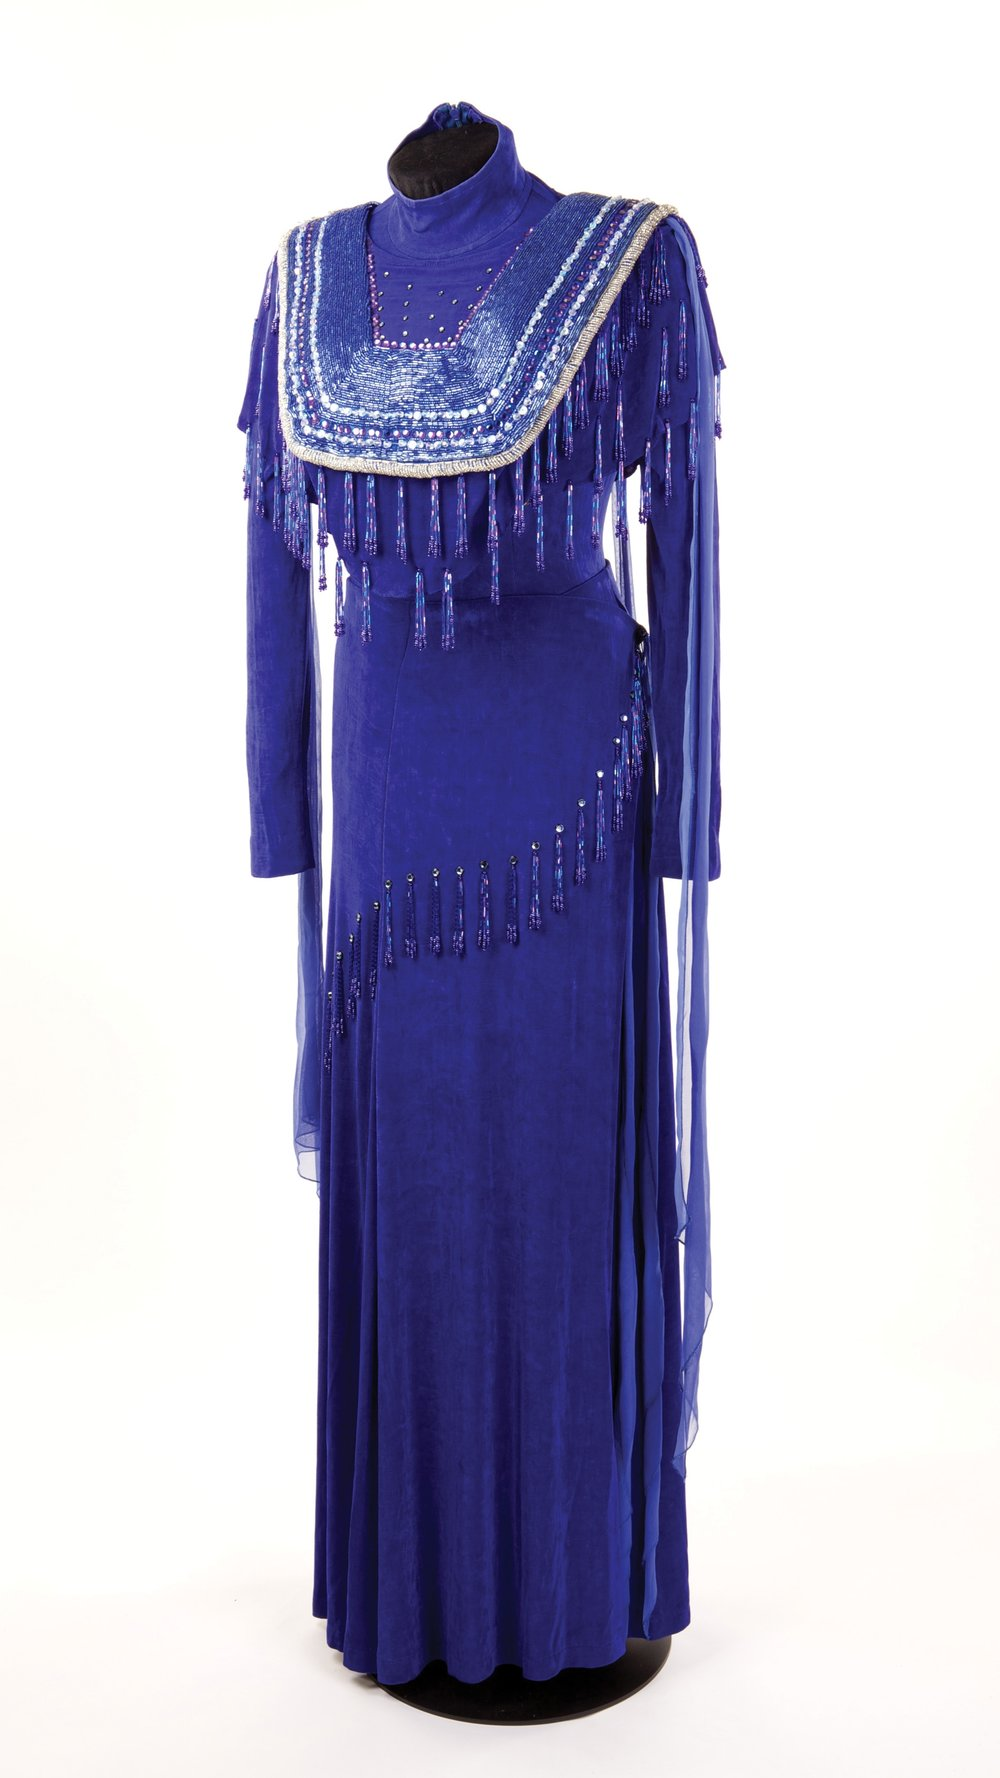 Blue Bead Dress.jpg